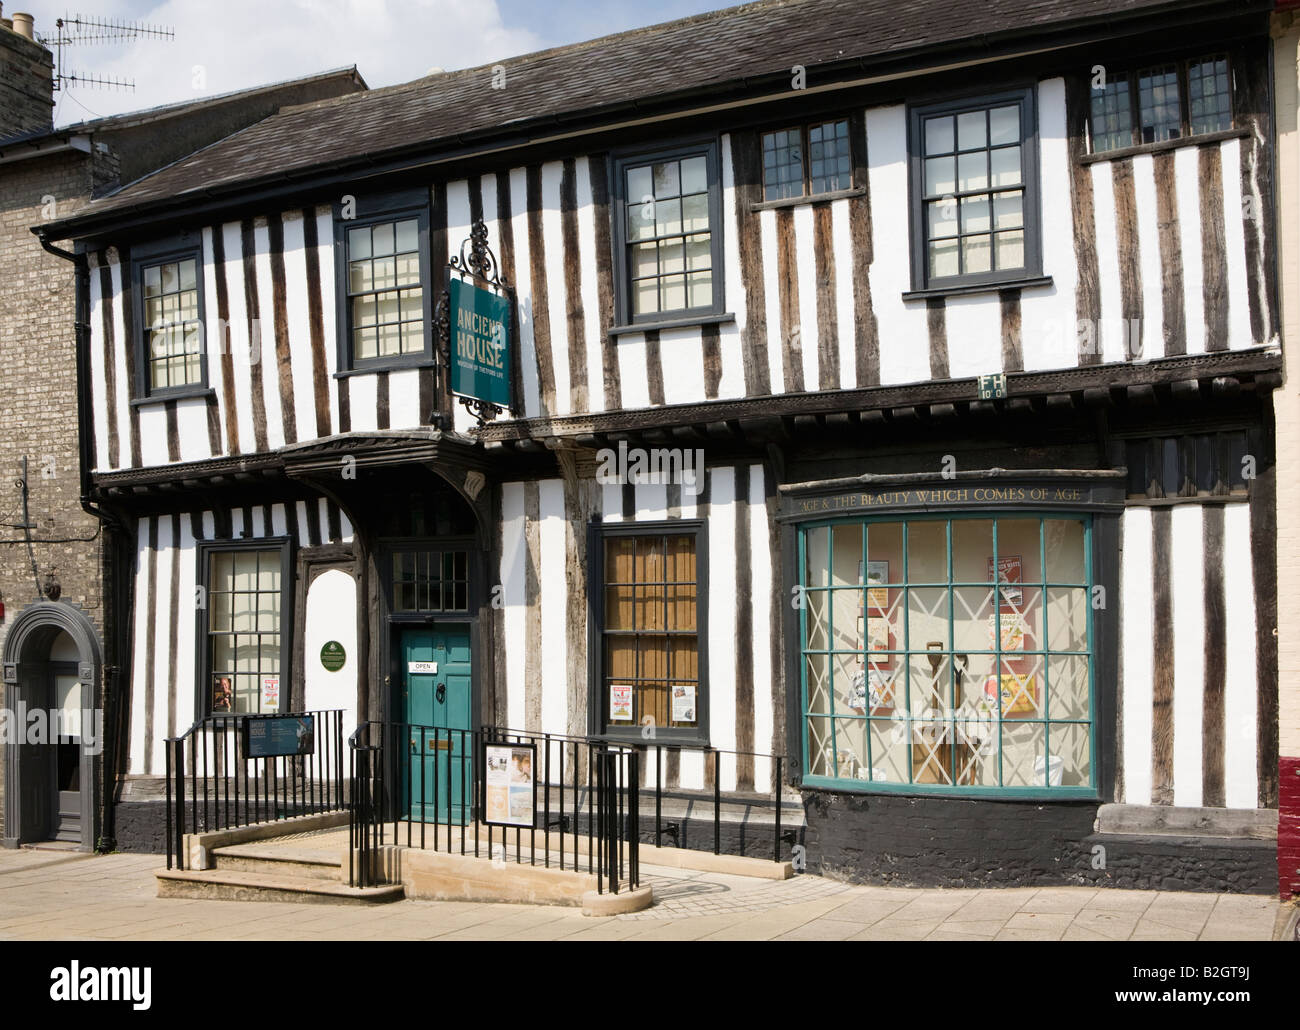 Ancient House Museum, White Hart Street, Thetford, Norfolk. UK Grade I listed. Renovated Tudor merchant's house. - Stock Image